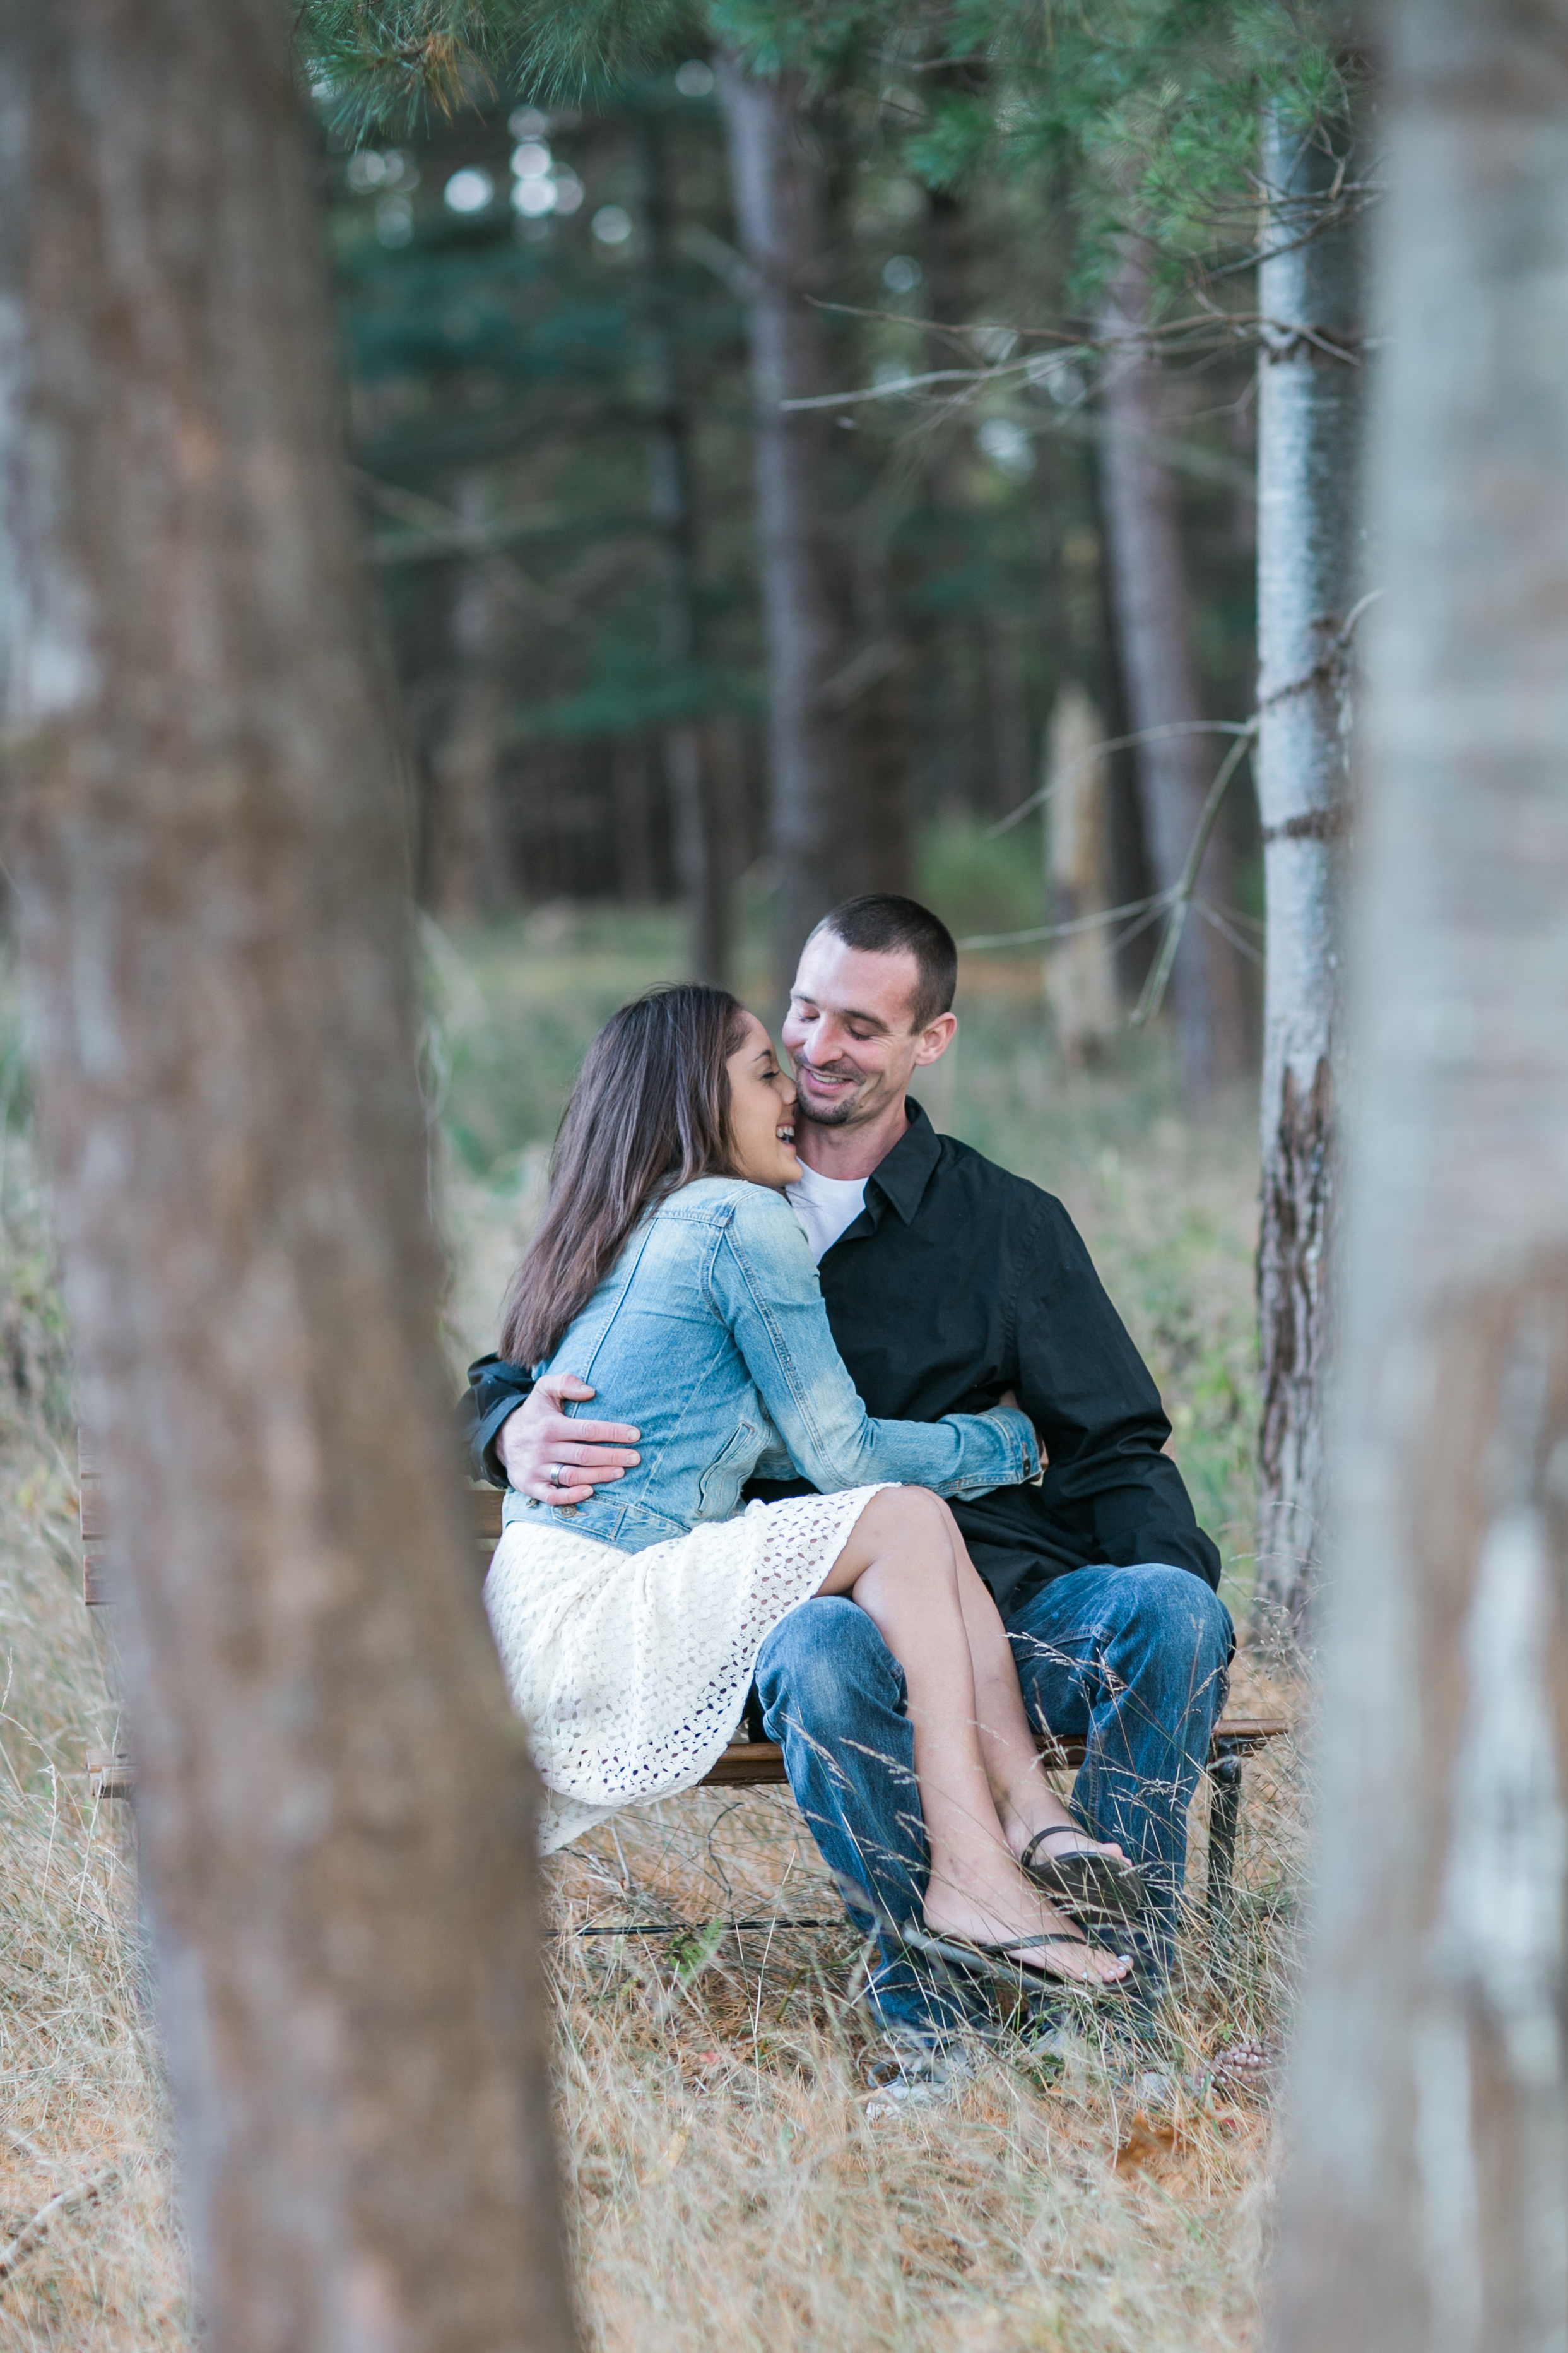 Gina and Tony - Engagement session - letchworth state park-1560.jpg